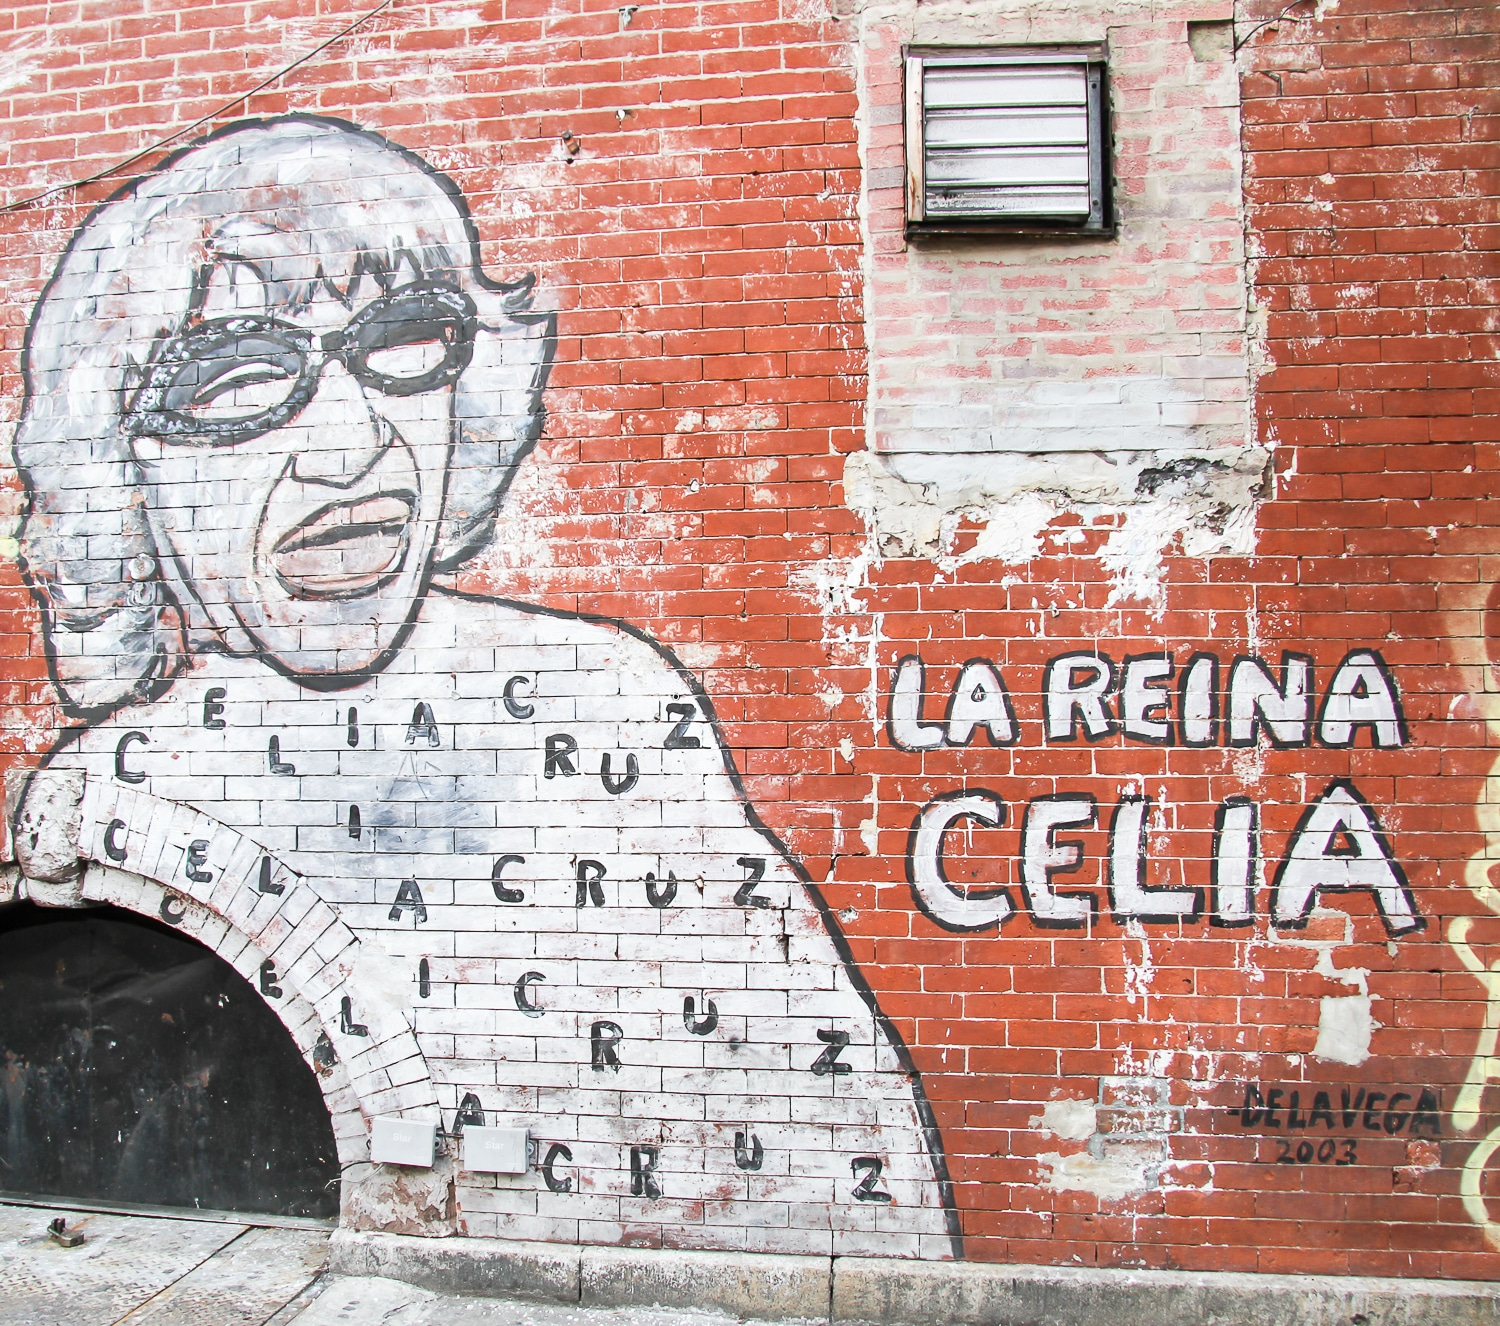 street-art-la-reina-celia-east-harlem-new-york East Harlem ou Spanish Harlem, le New York Latino